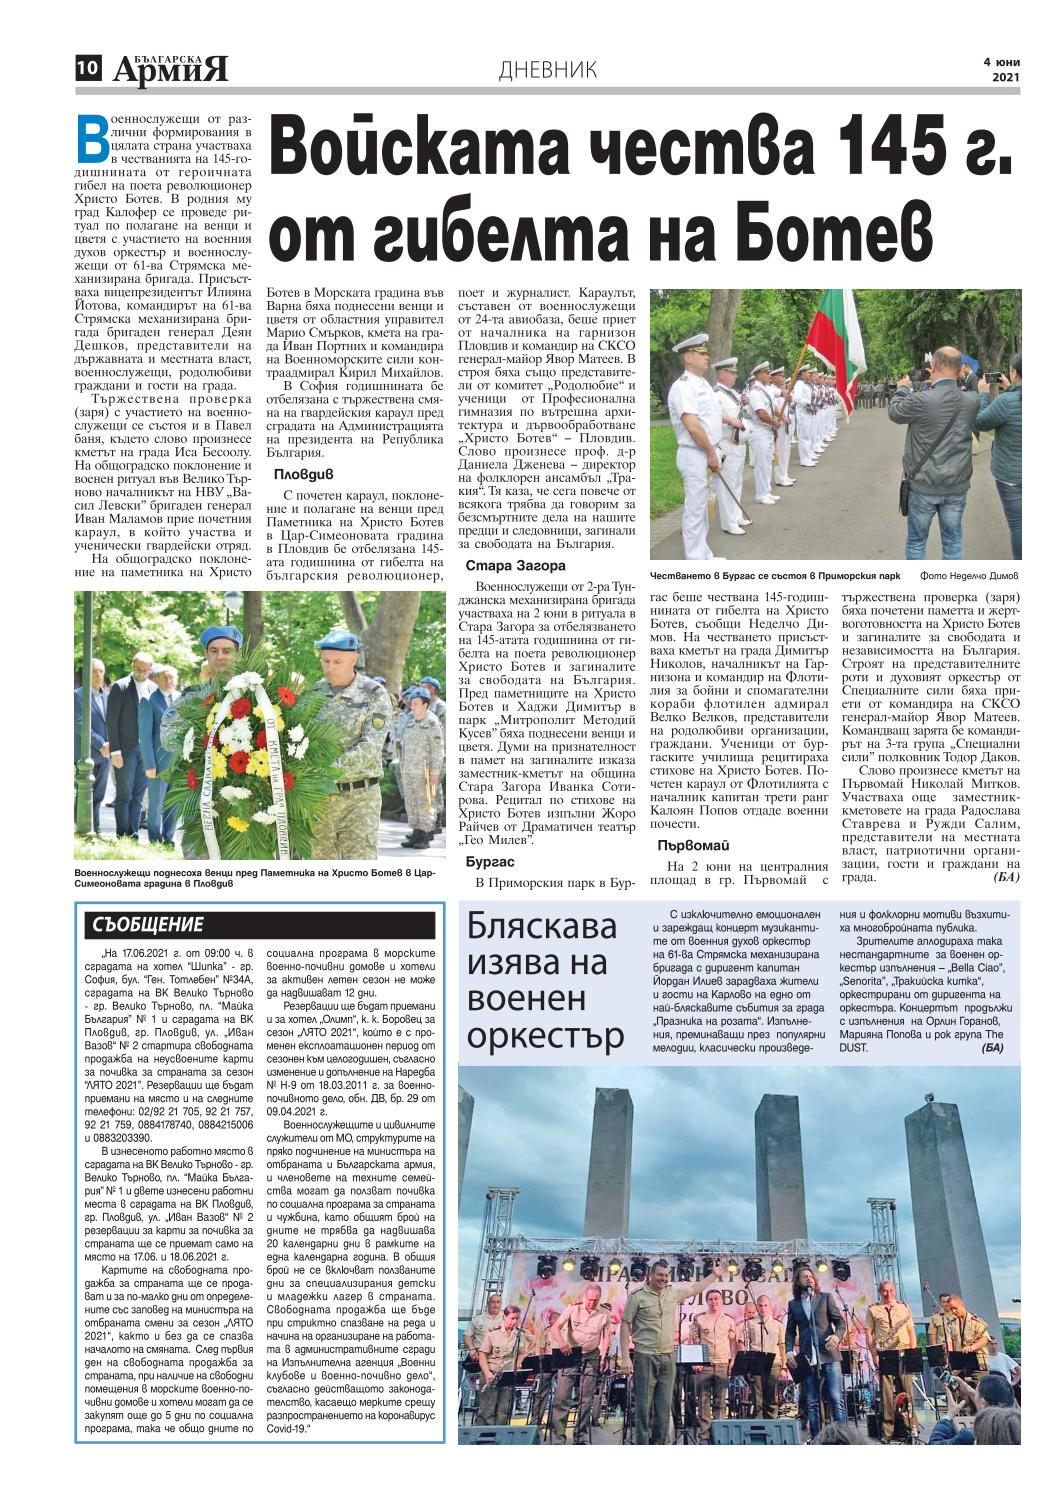 https://armymedia.bg/wp-content/uploads/2021/06/10.page1_.jpg